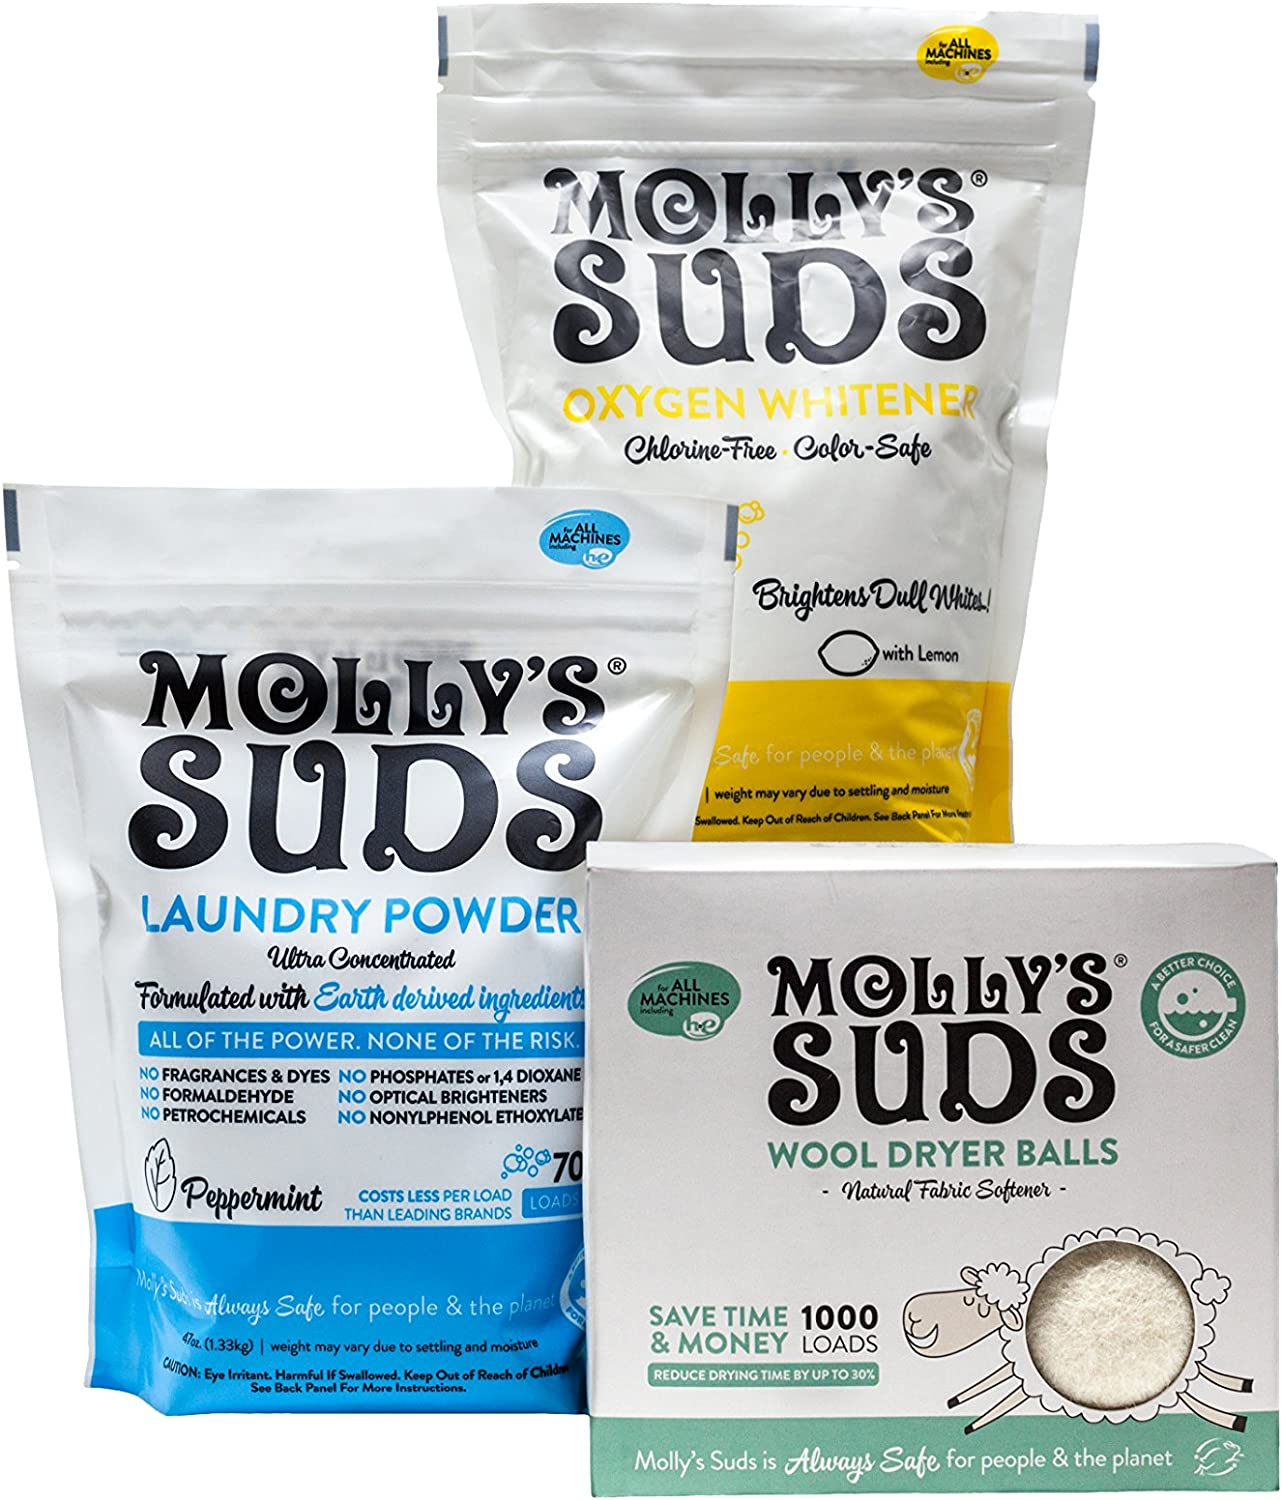 Molly's Suds Starter Pack - 70 Load Natural Laundry Powder, 1 Package of Wool Dryer Balls and 1 Oxygen Whitener.